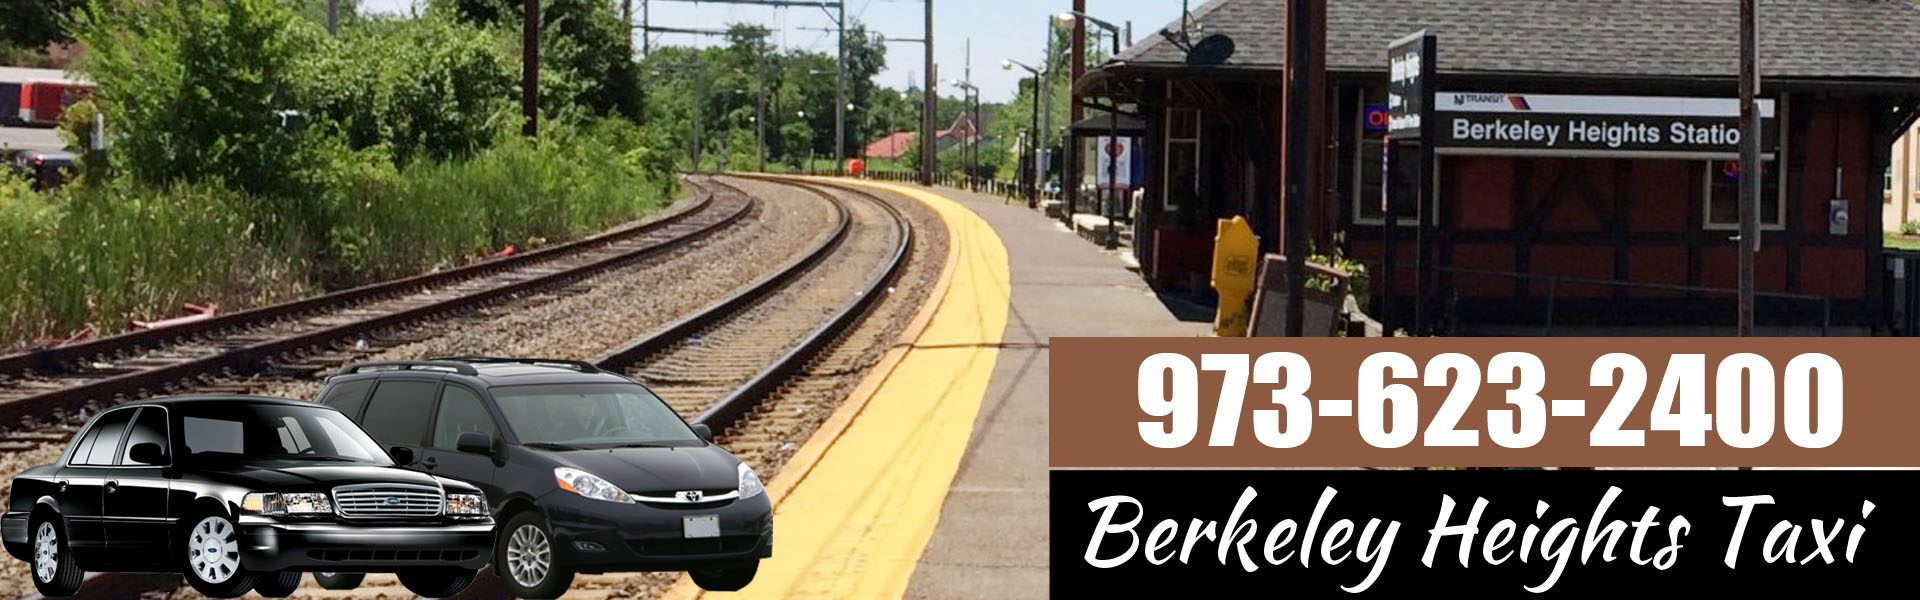 Berkeley Heights to Newark Airport Taxi Service